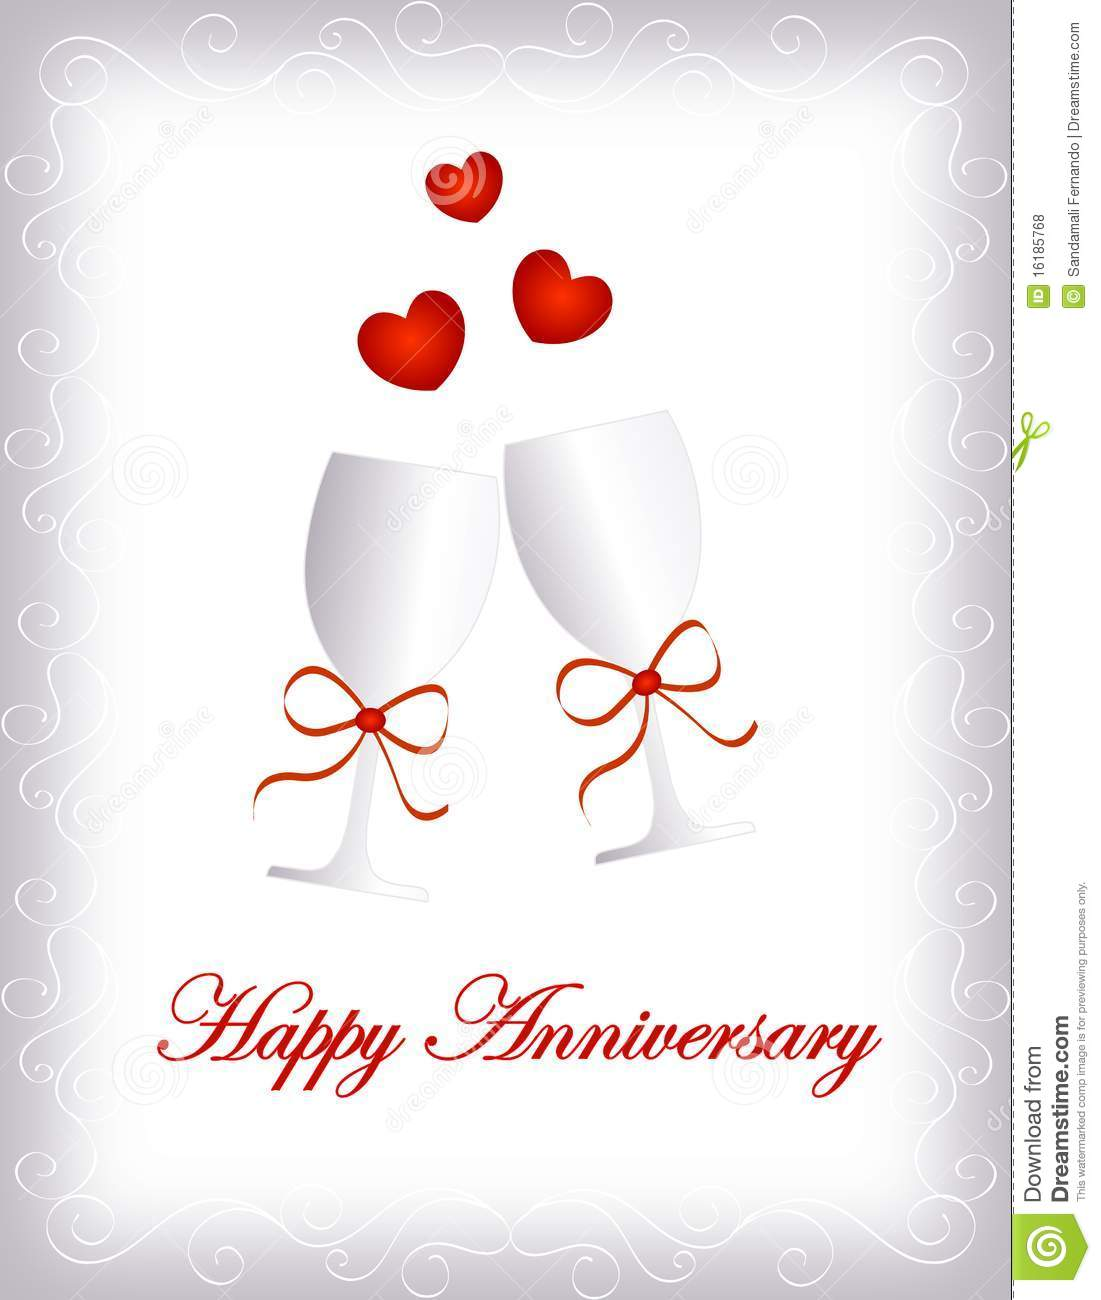 Happy Anniversary Royalty Free Stock Photos Image 16185768